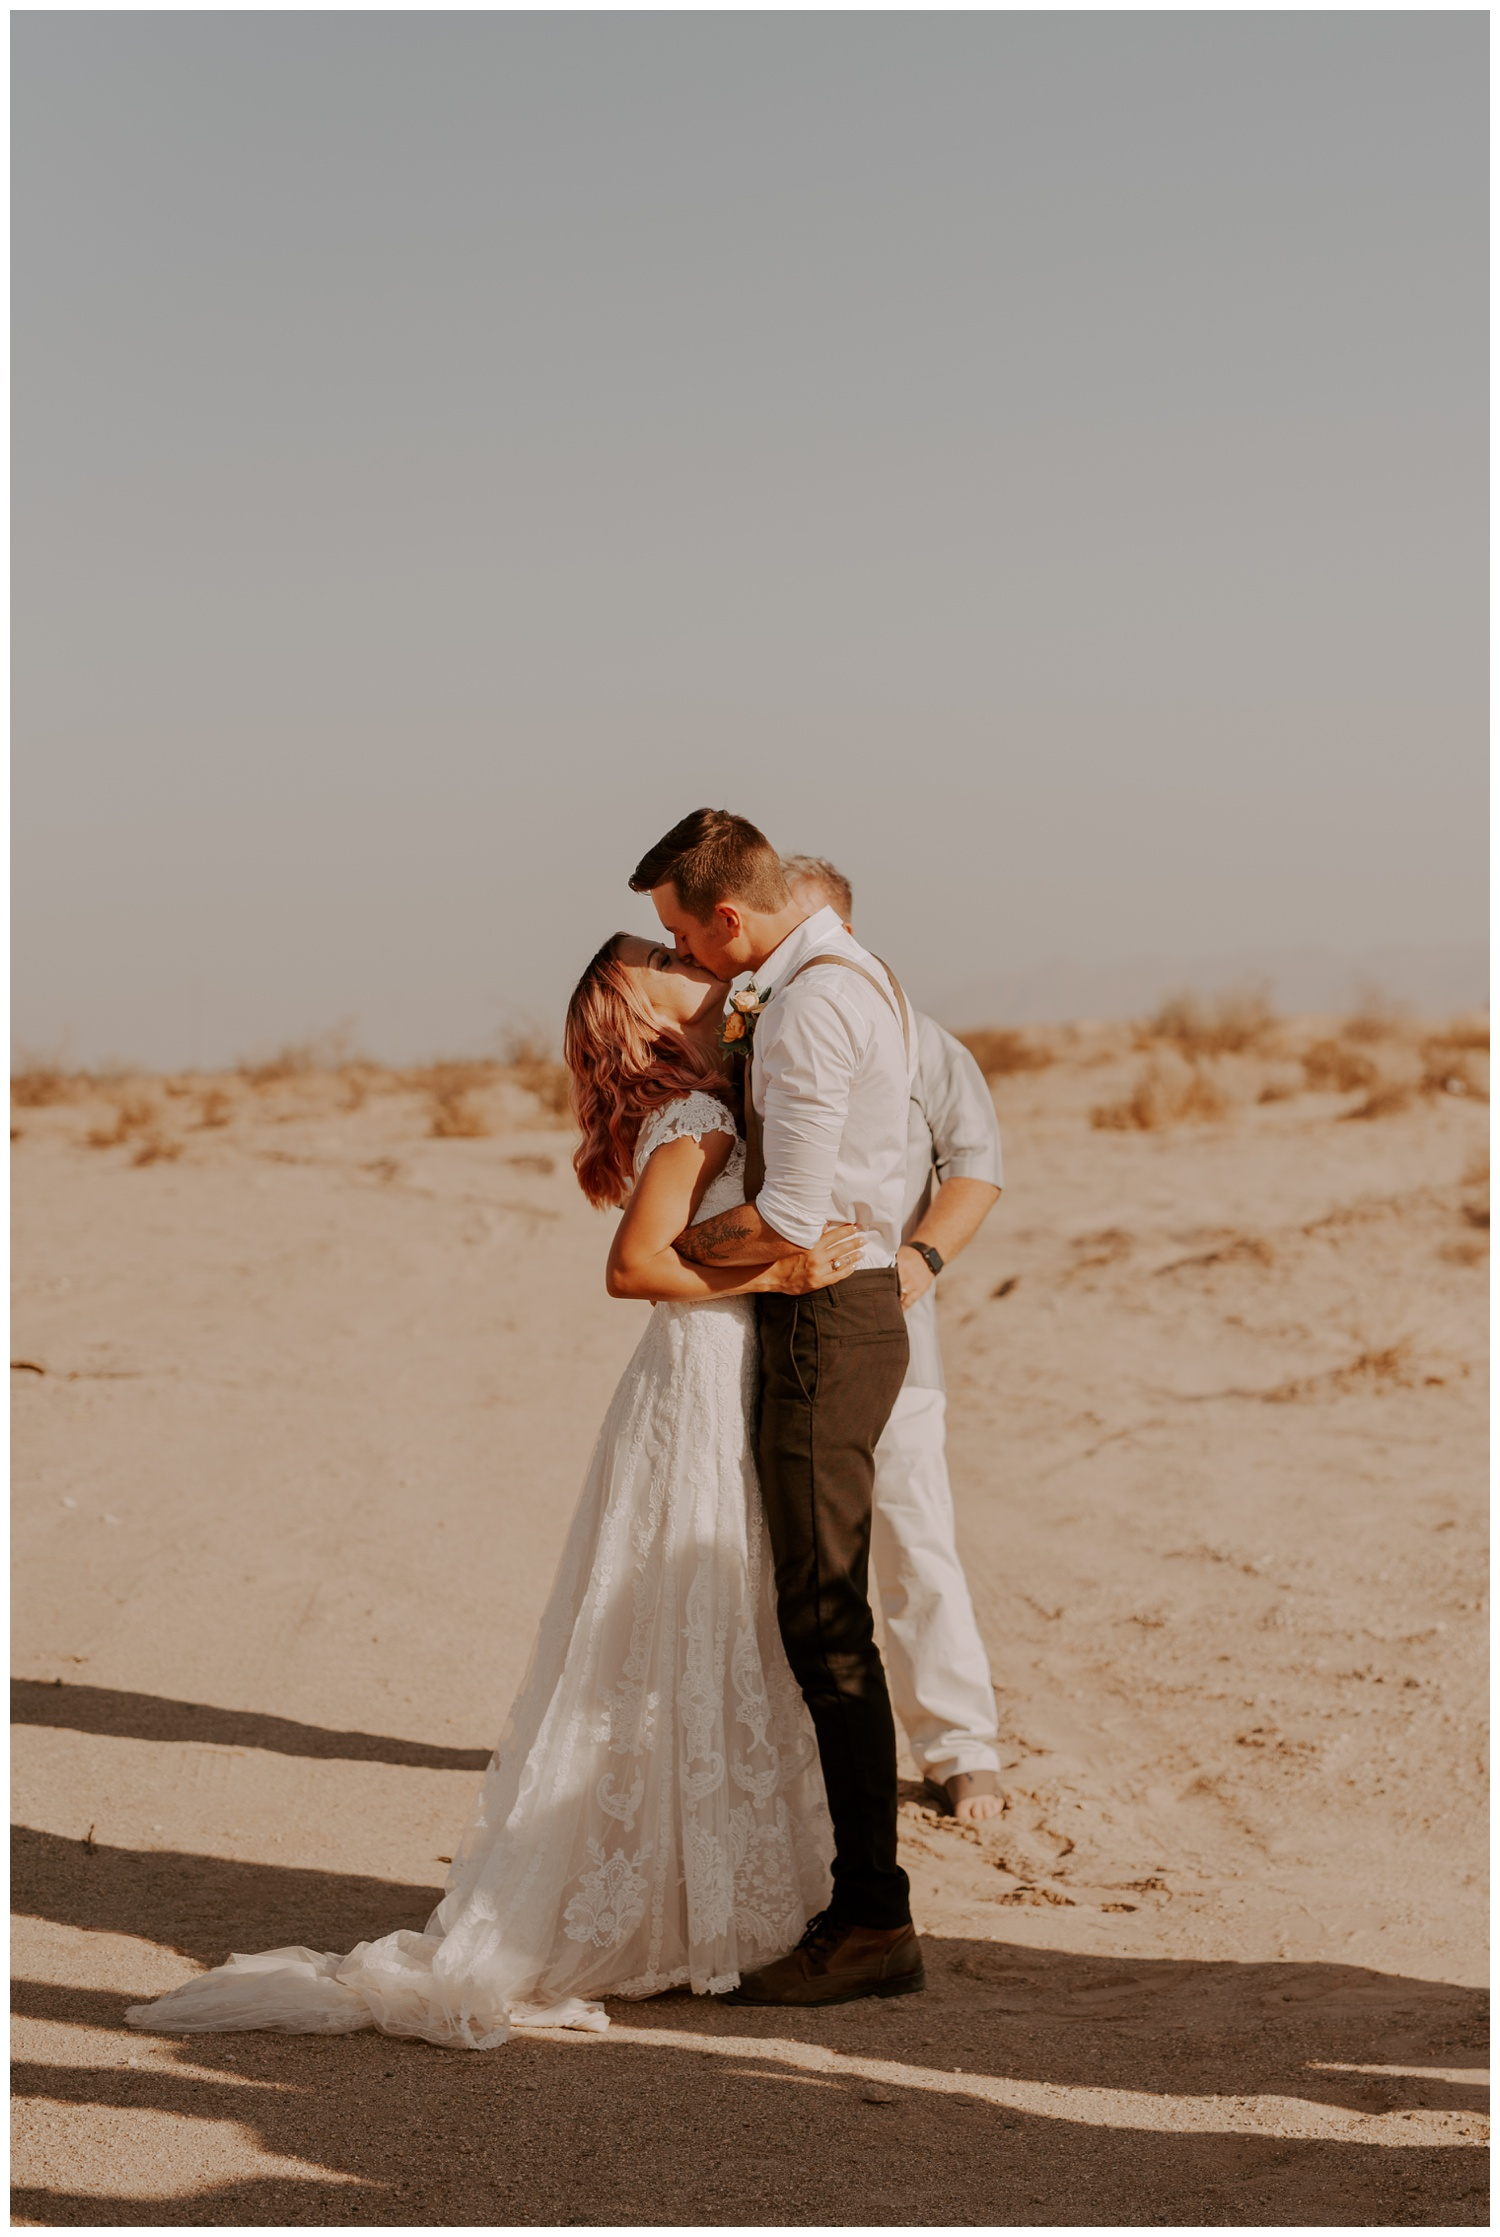 Salvation Mountain Elopement Palm Springs Pink Hair Bride - Jessica Heron Images_0140.jpg